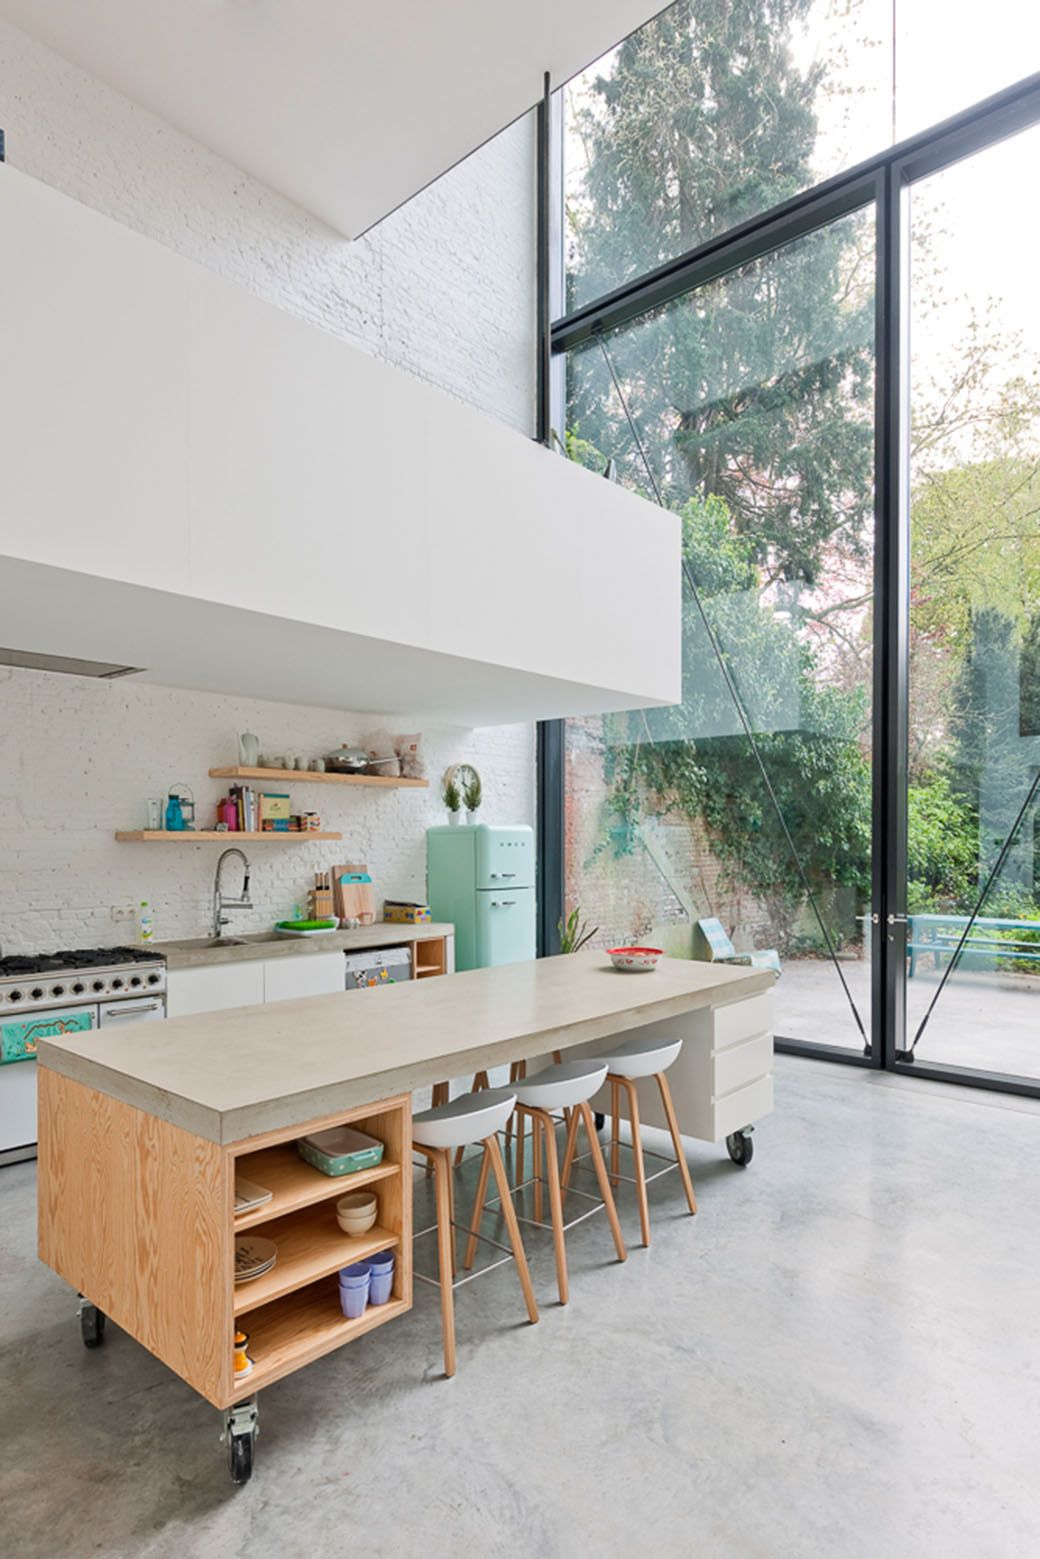 Islas De Cocina Con Ruedas Gallery Of Town House In Antwerp Sculp It 2 Cocinas